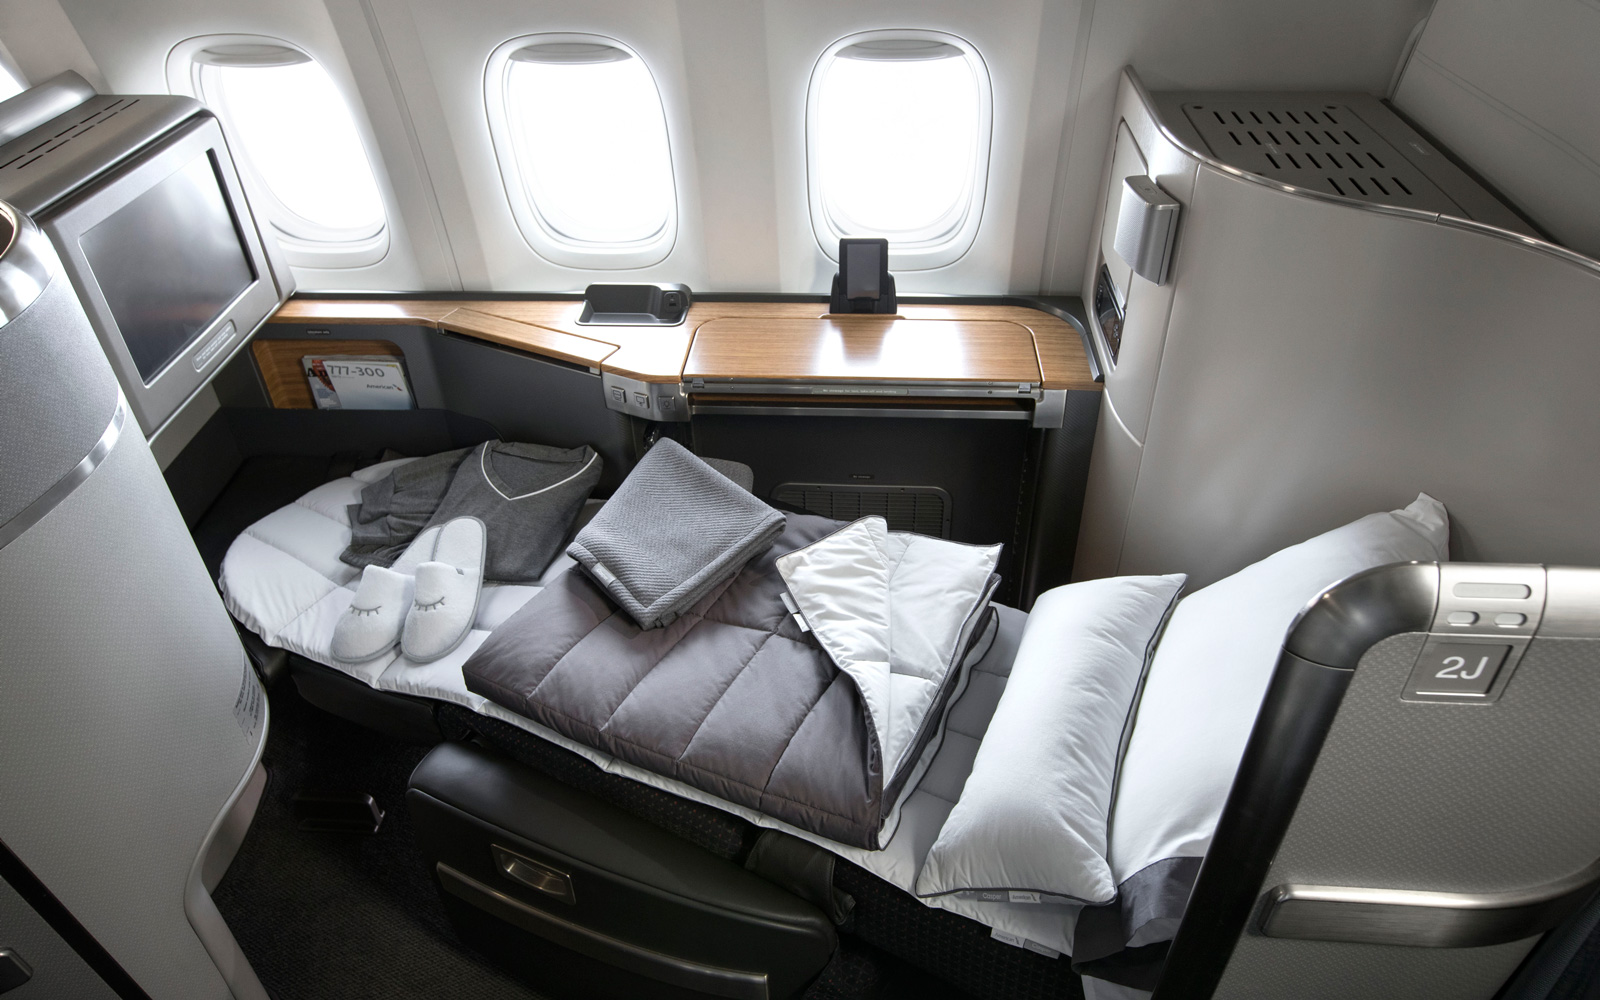 Casper Is Designing a Full Suite of Sleep Products for American Airlines